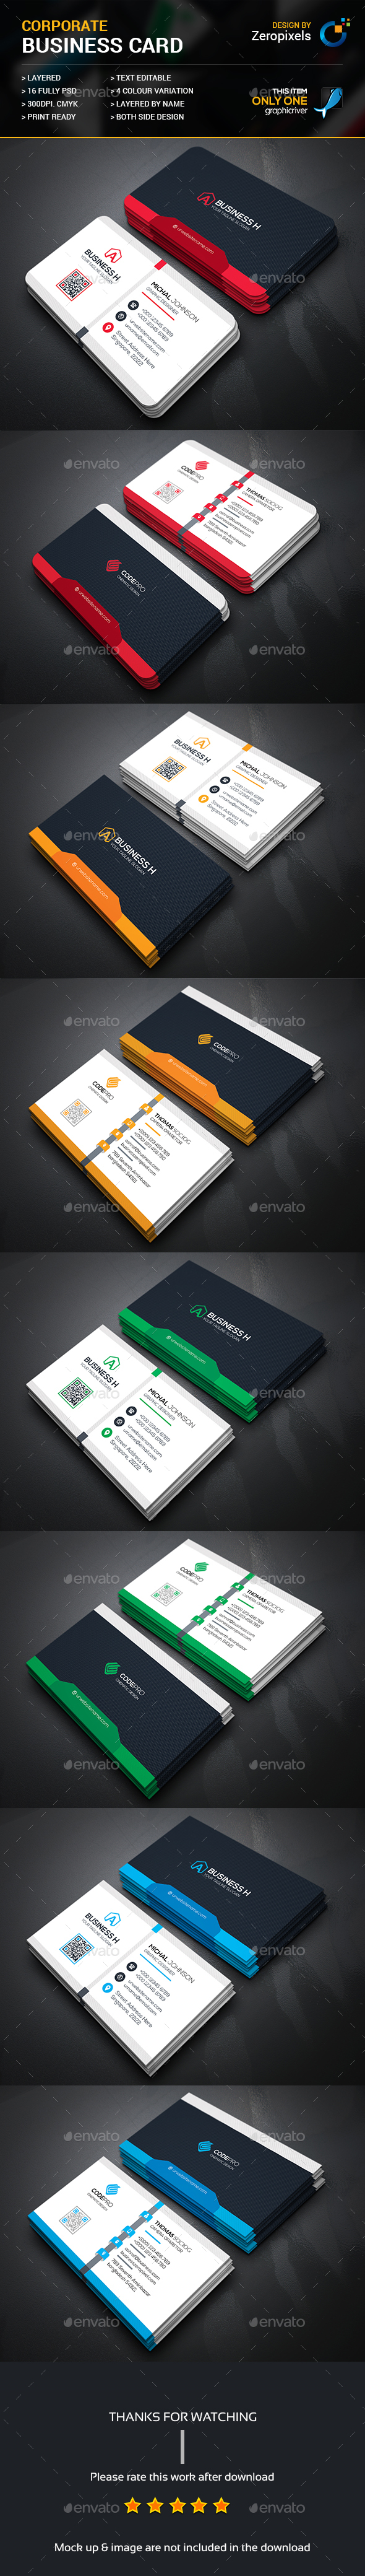 Corporate Business Card Templates PSD Bundle. Download here: https ...